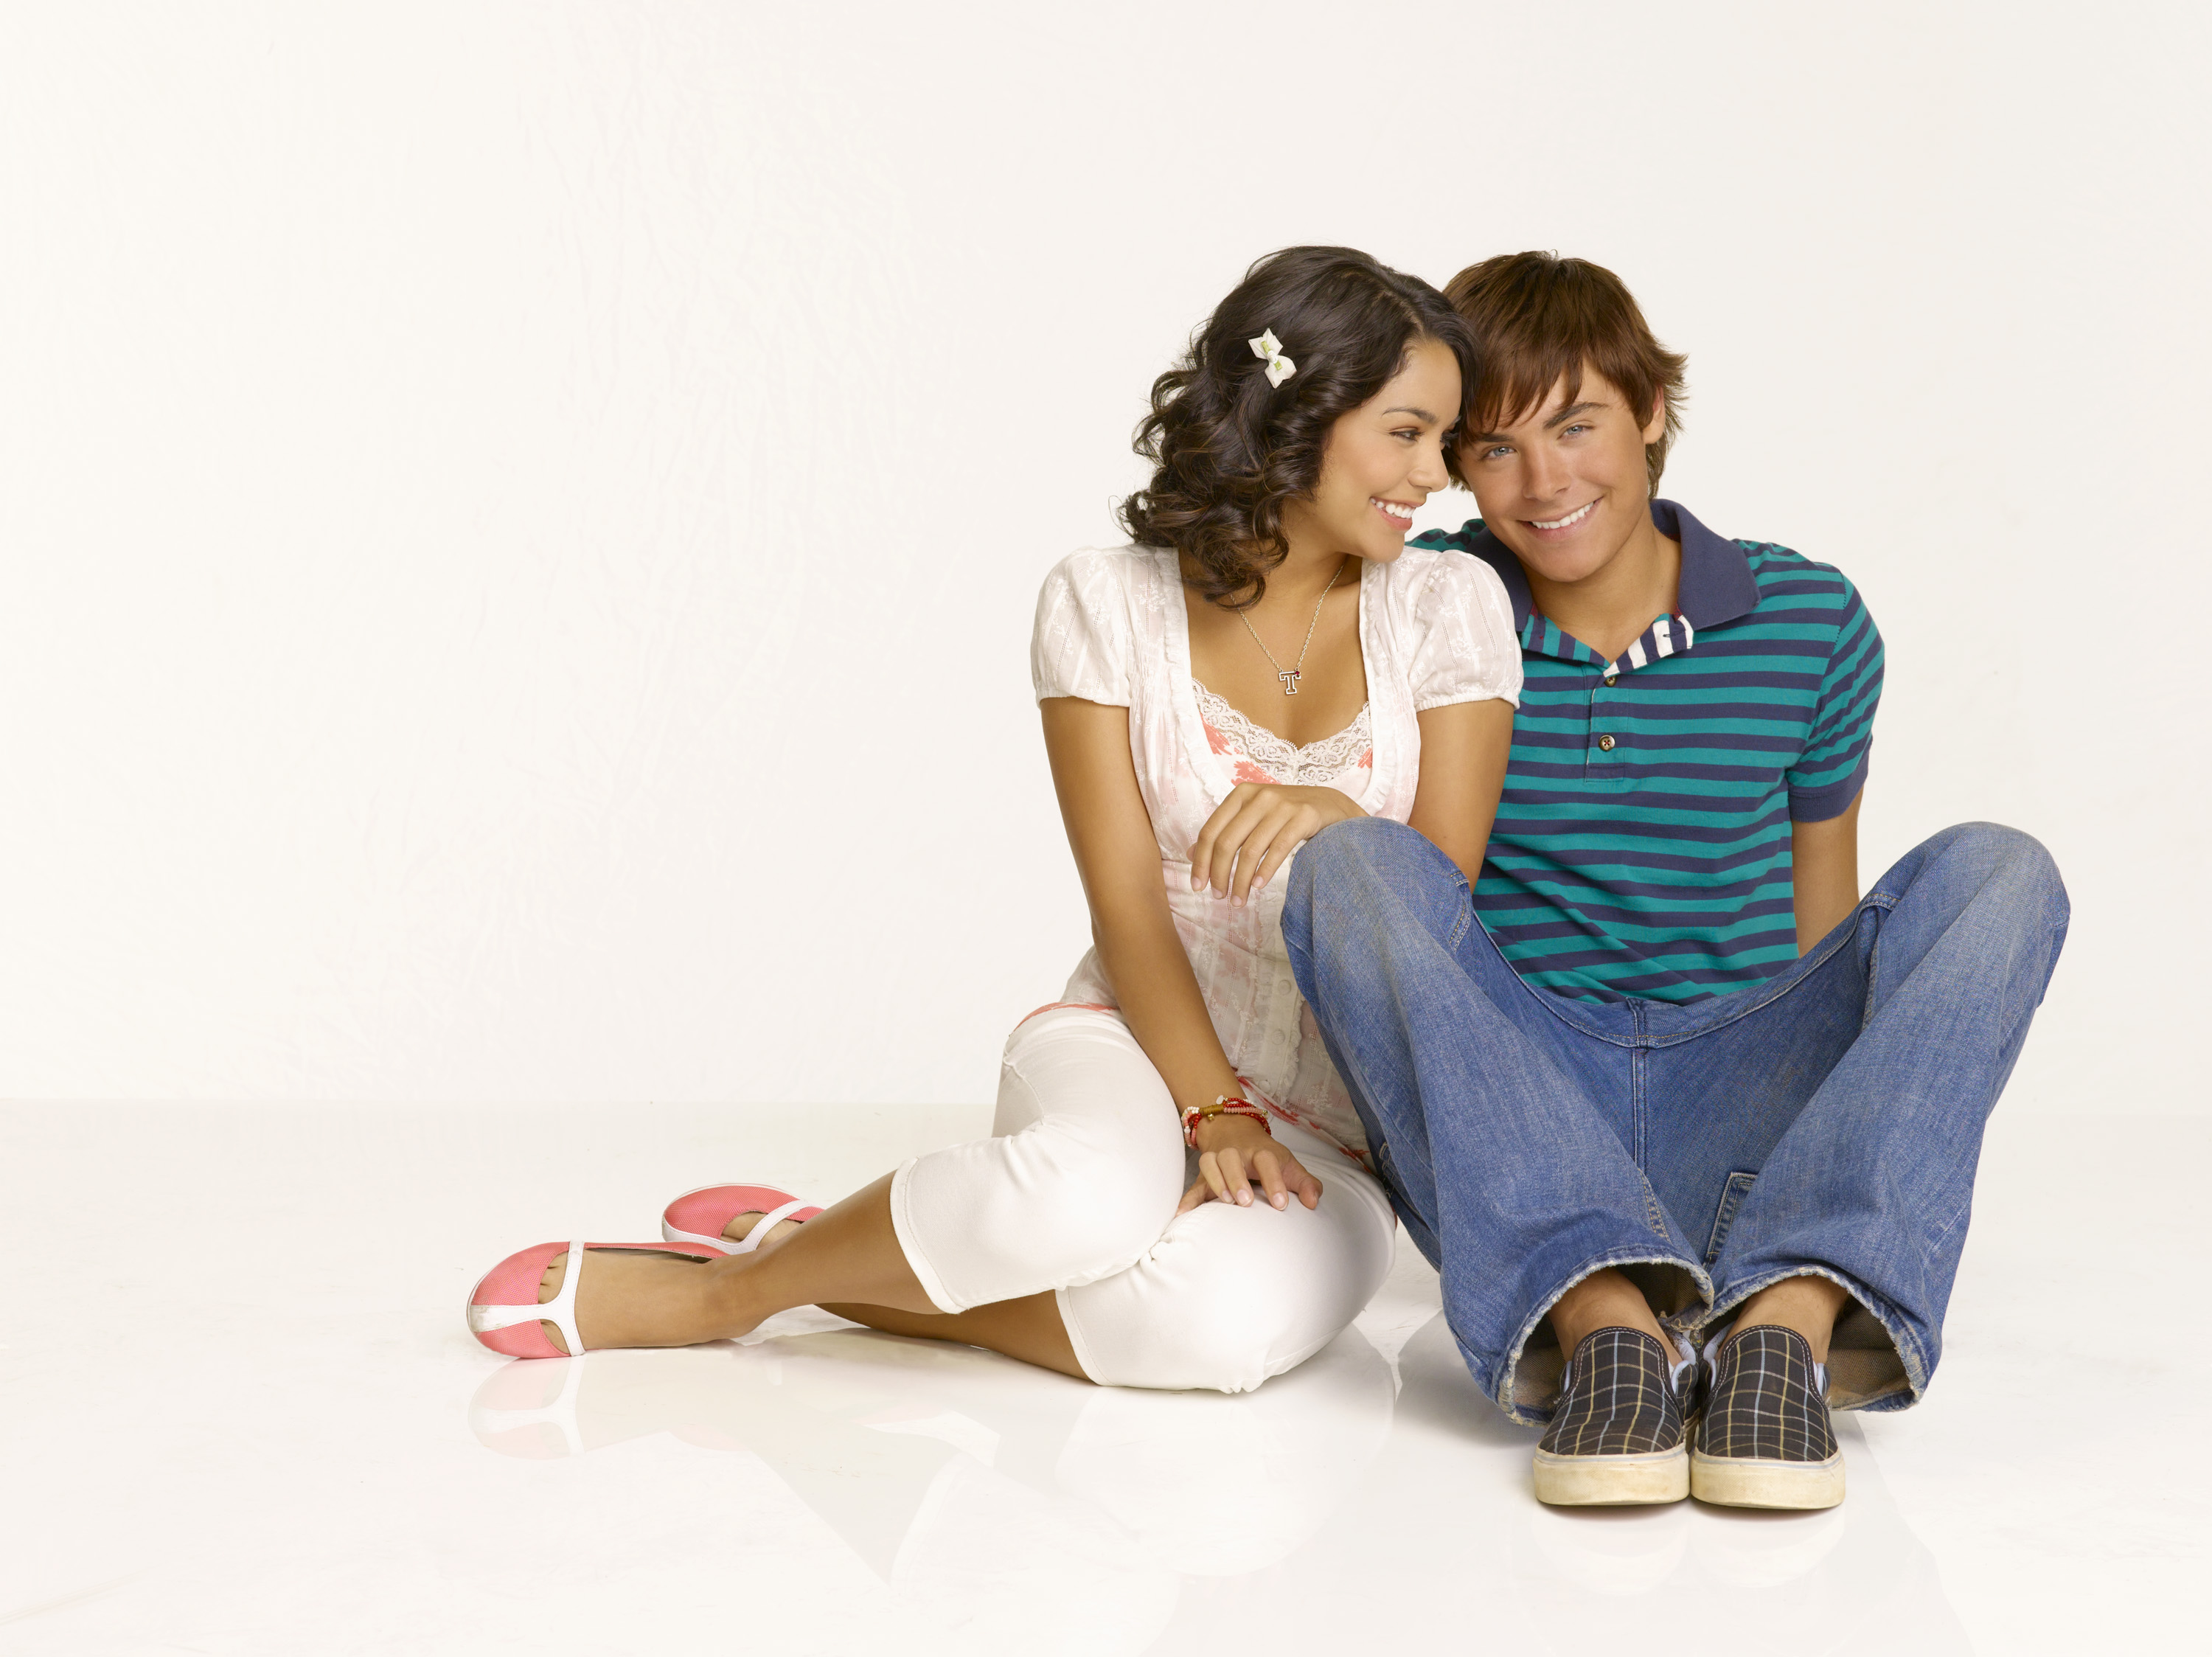 High School Musical 2 images hsm2 HD wallpaper and background photos